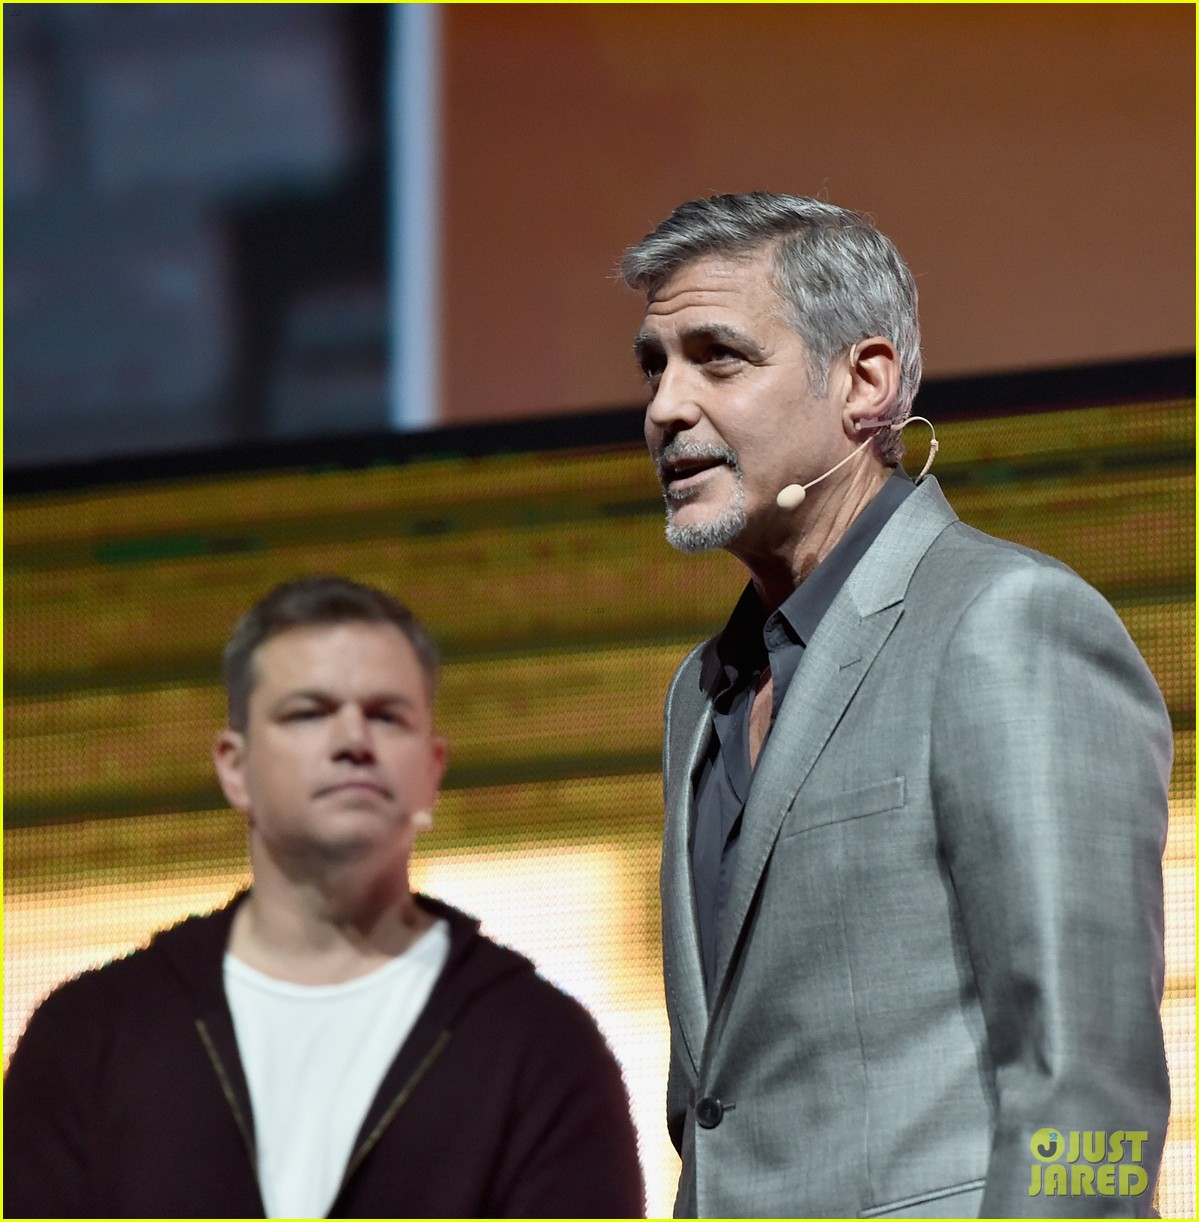 George Clooney at CinemaCon presenting Suburbicon George-clooney-julianne-moore-matt-damon-cinemacon-2017-02